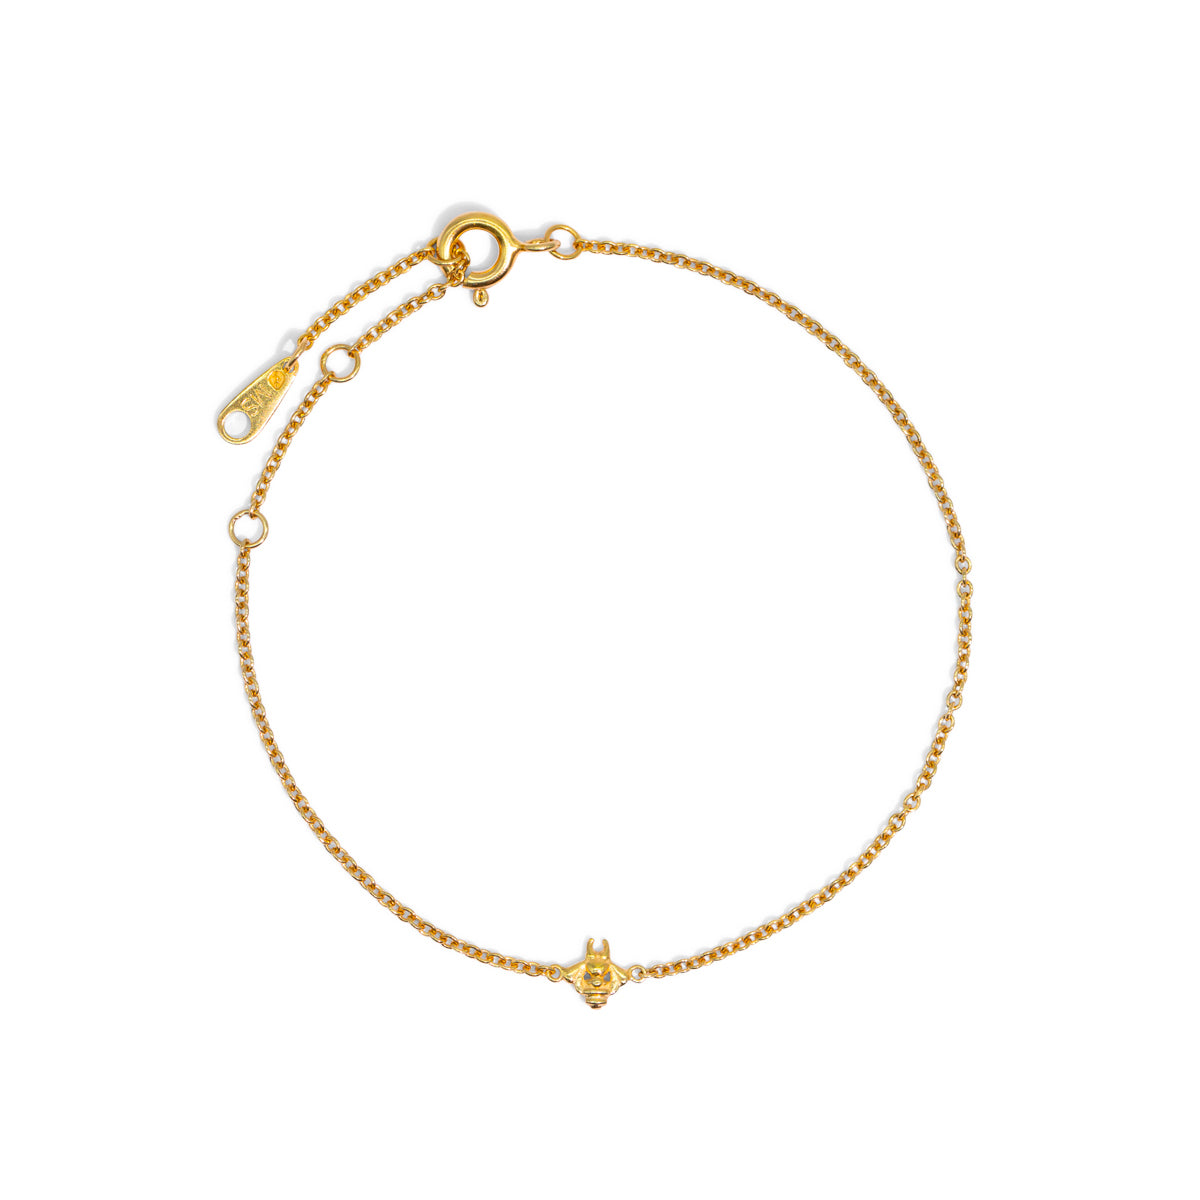 The Gold Tiny Bumble Bee Bracelet